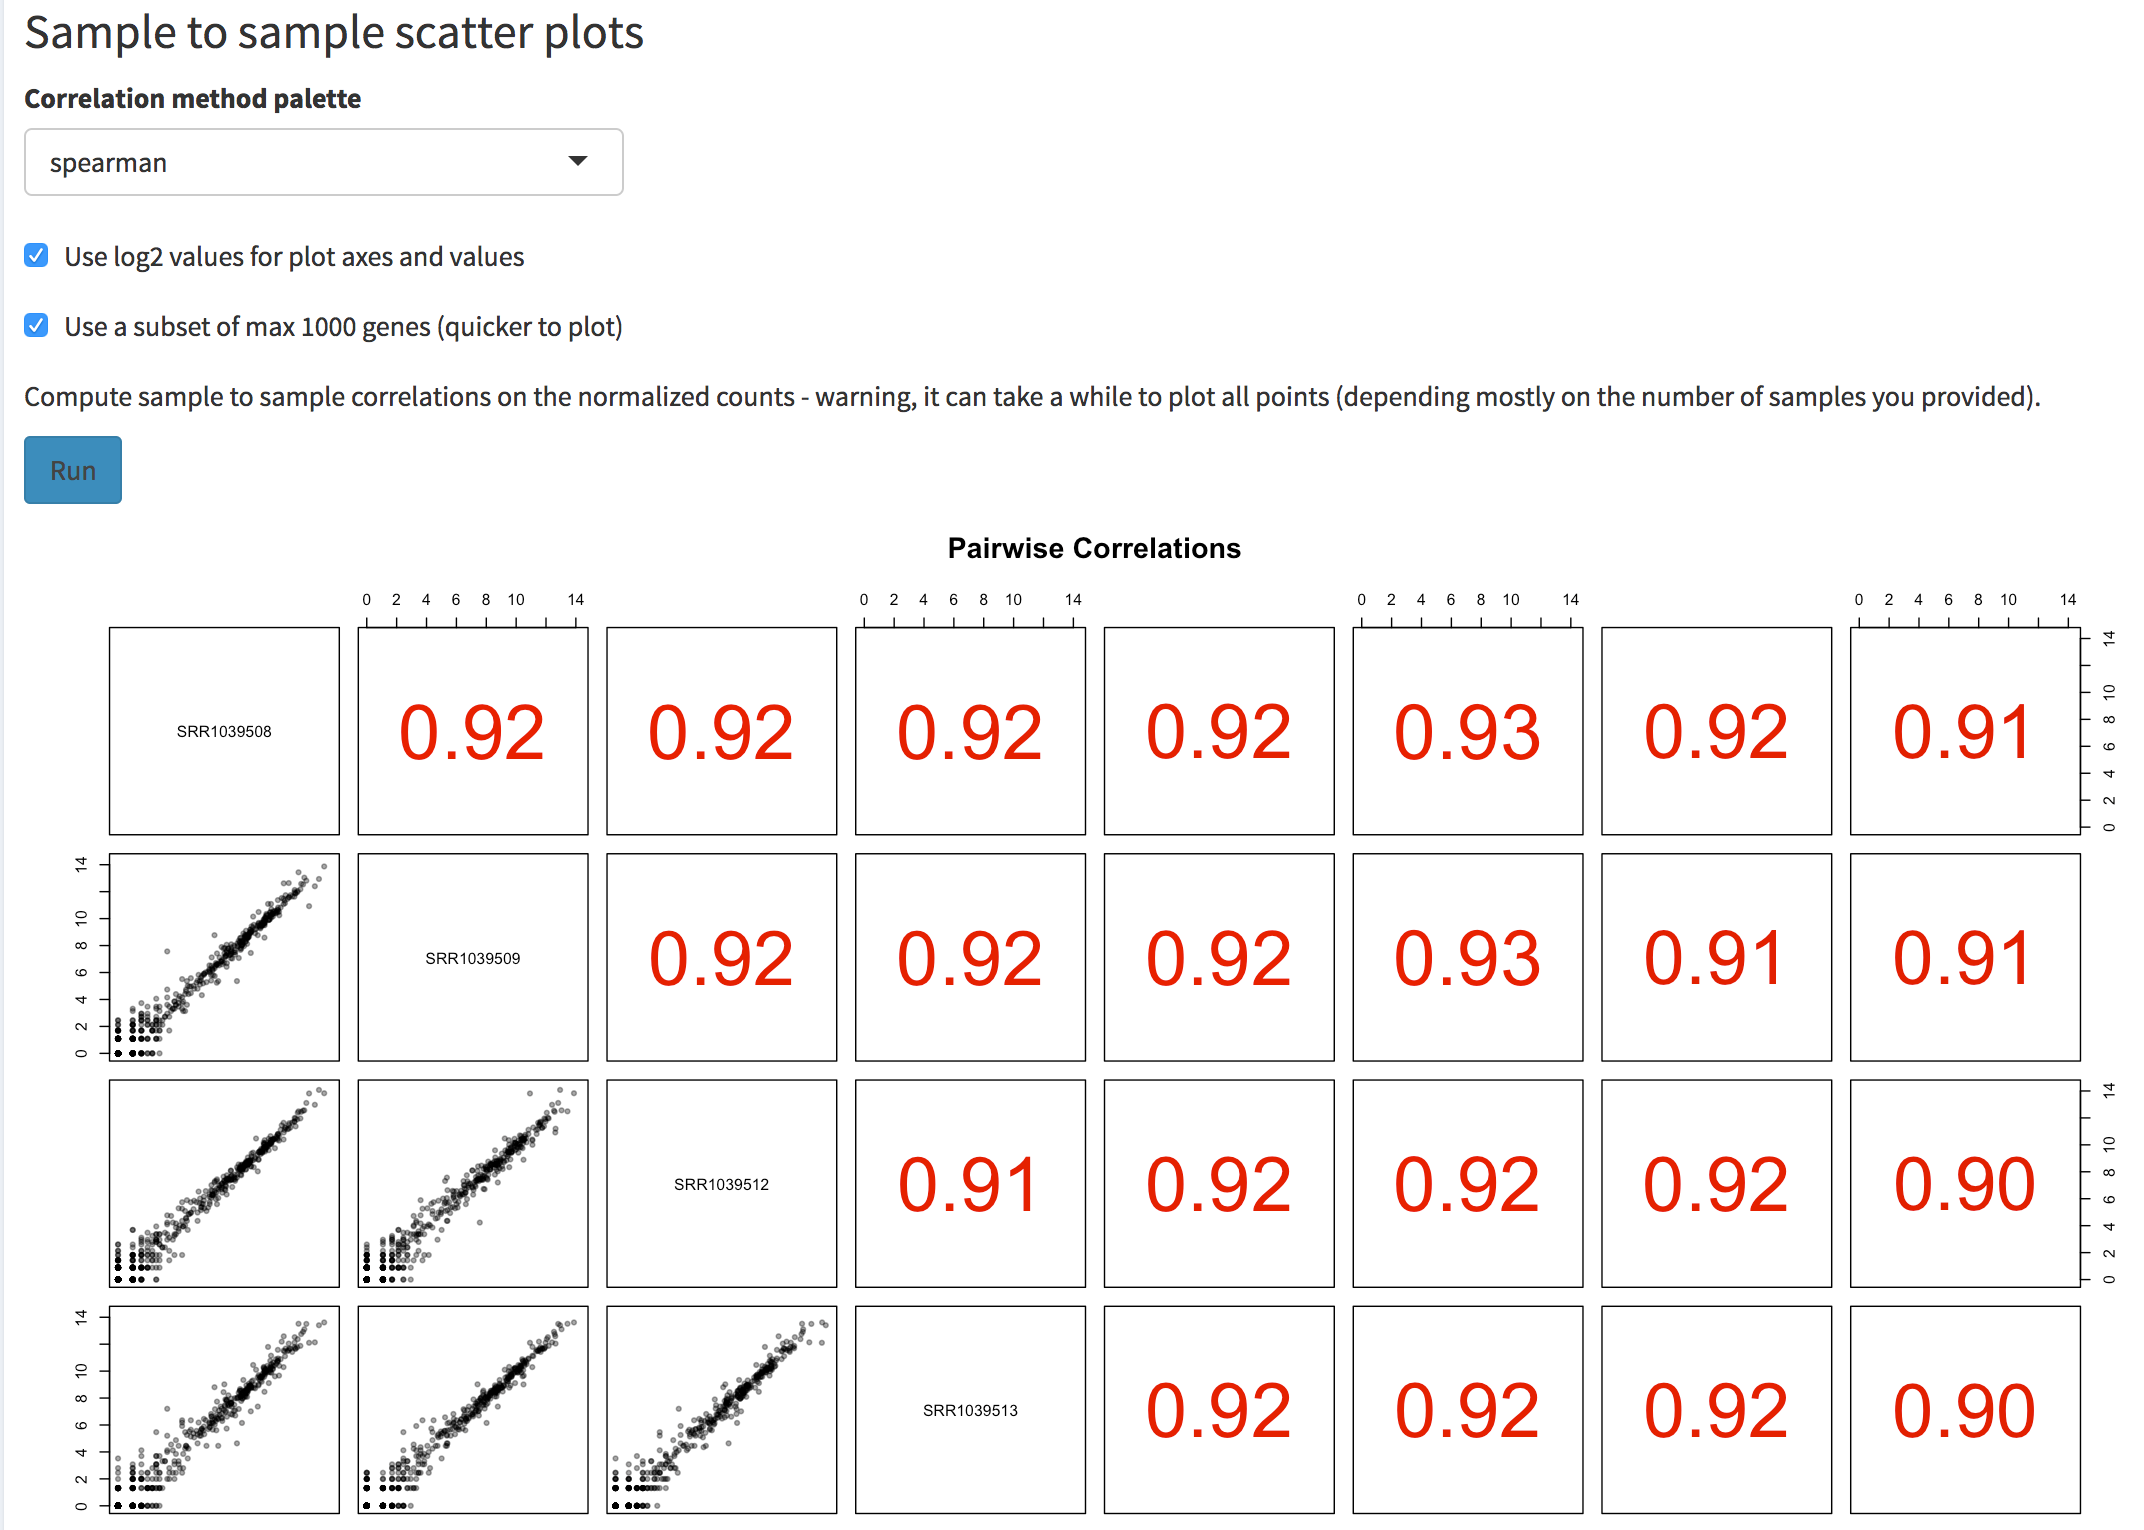 Screenshot of the sample to sample scatter plot matrix. The user can select the correlation method to use, the option to plot values on log2 scales, and the possibility to use a subset of genes (to obtain a quicker overview if many samples are provided).